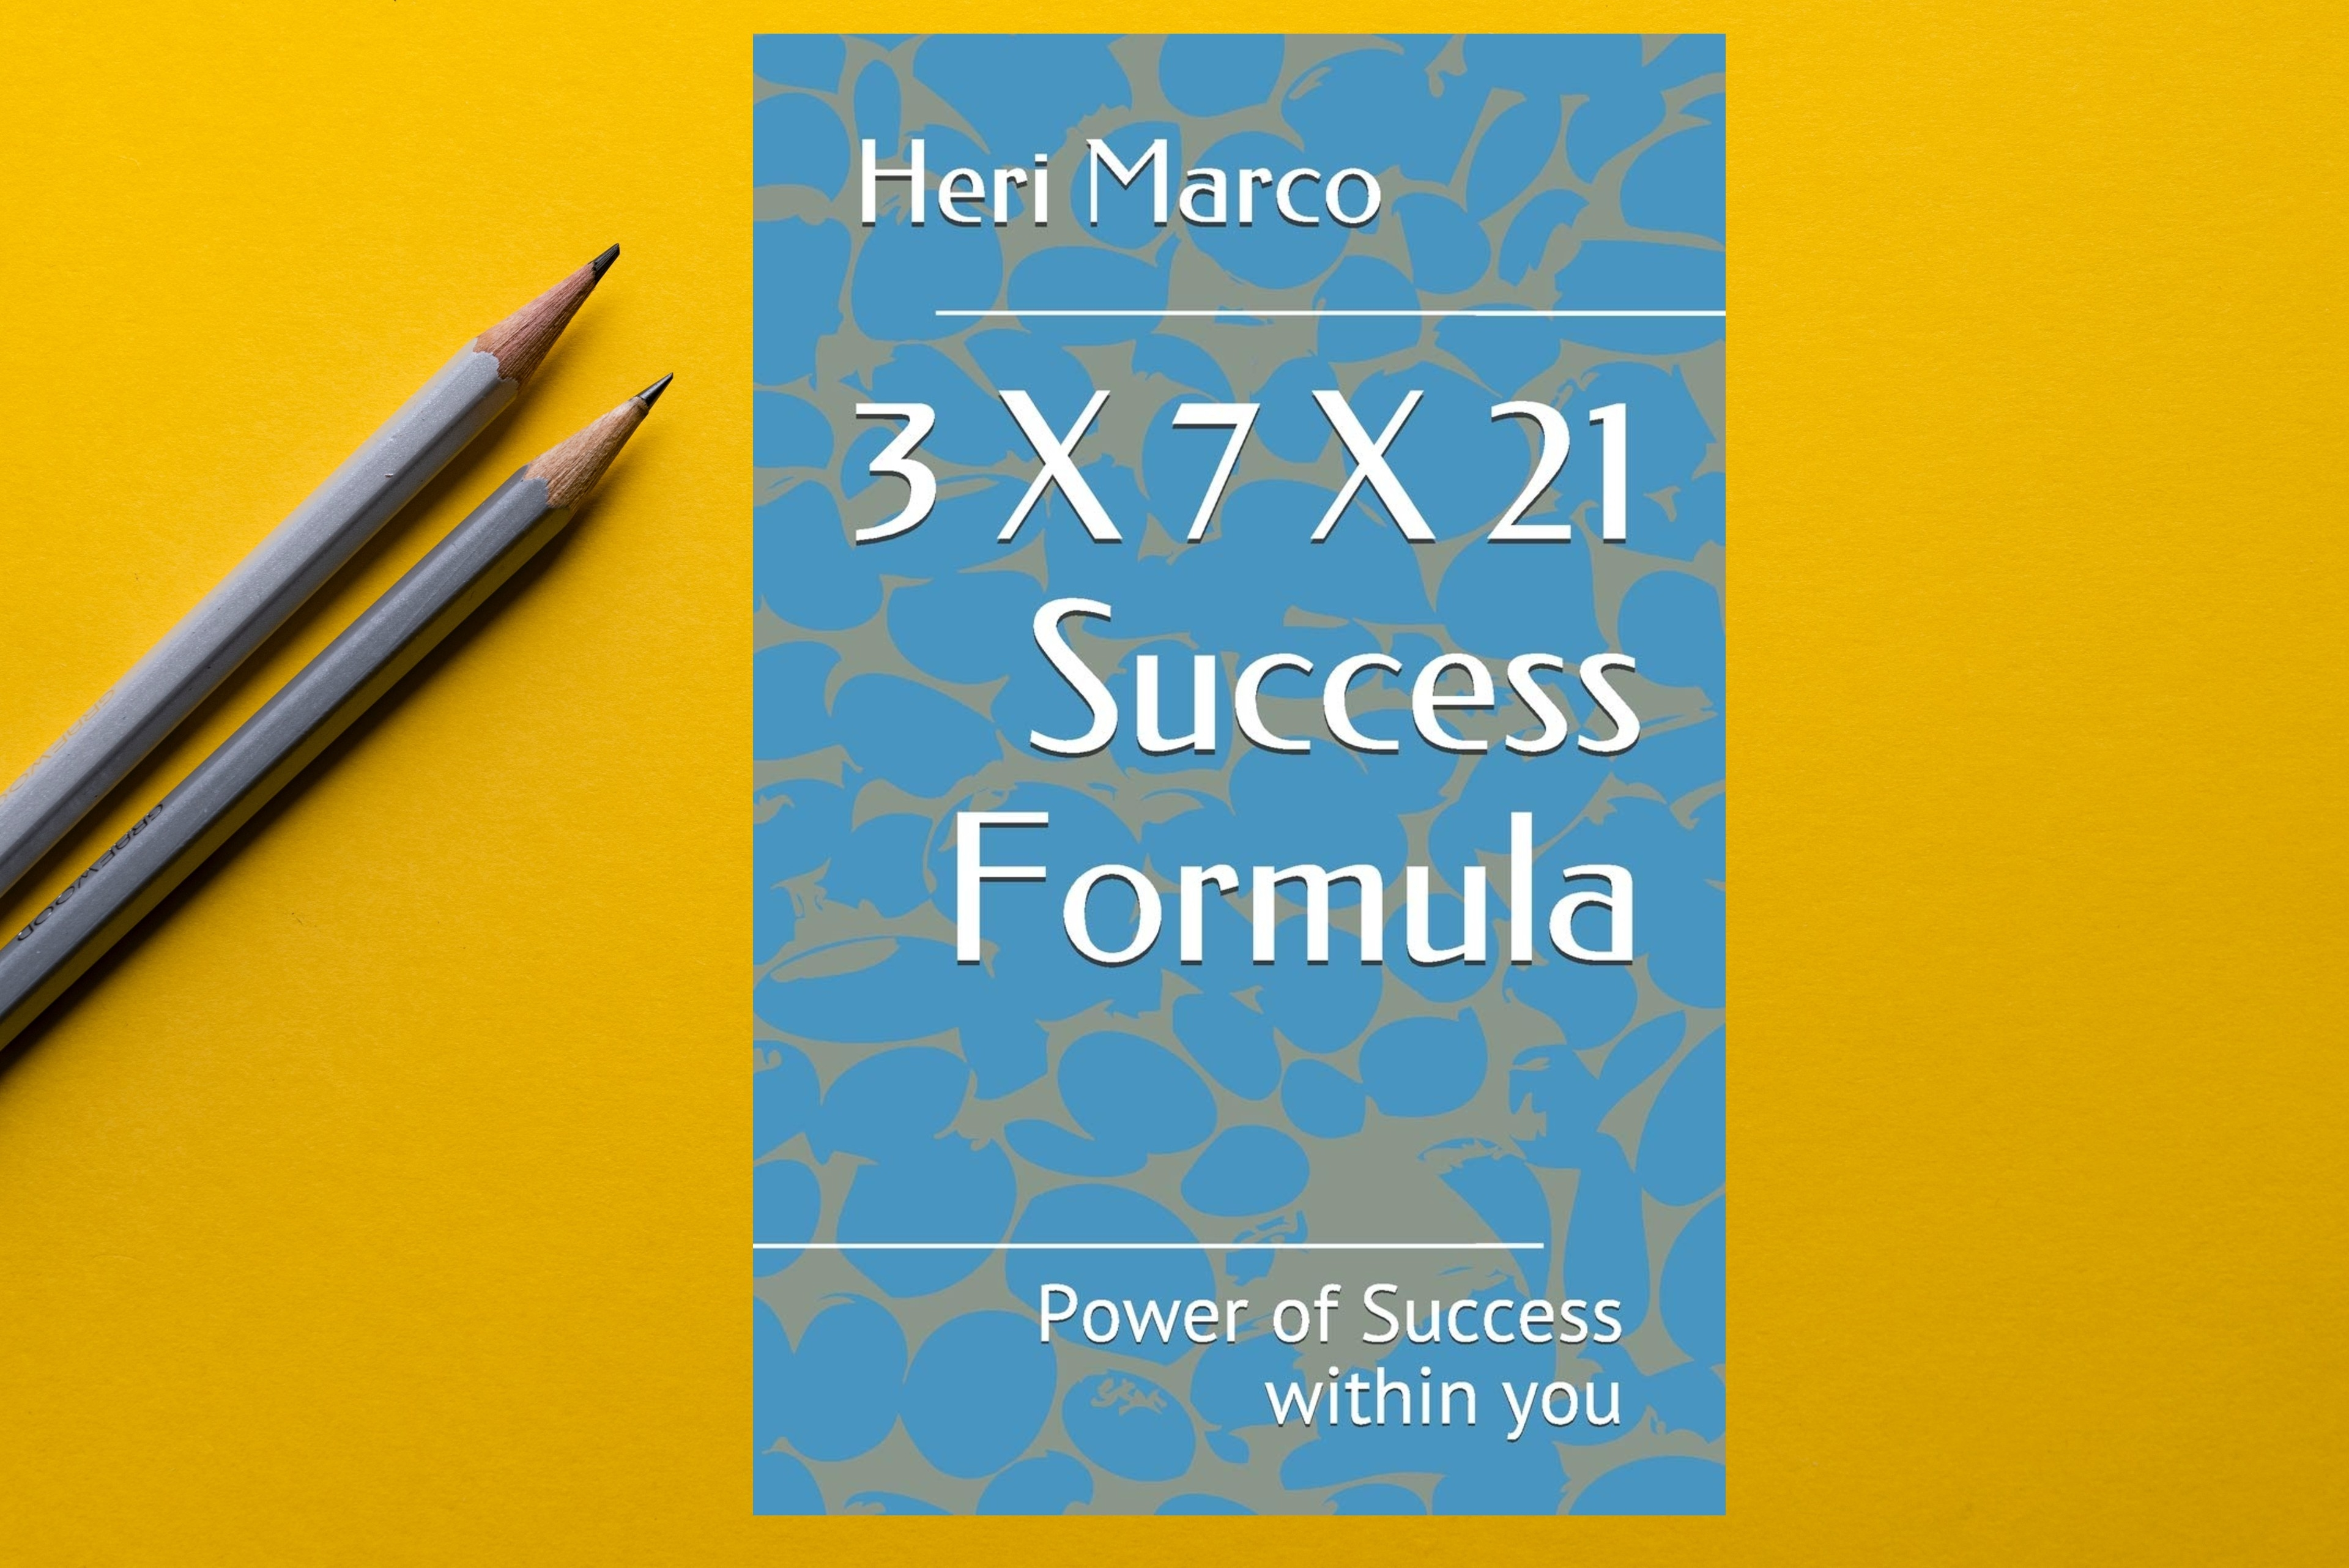 3 X 7 X 21 Success Formula - Trending book